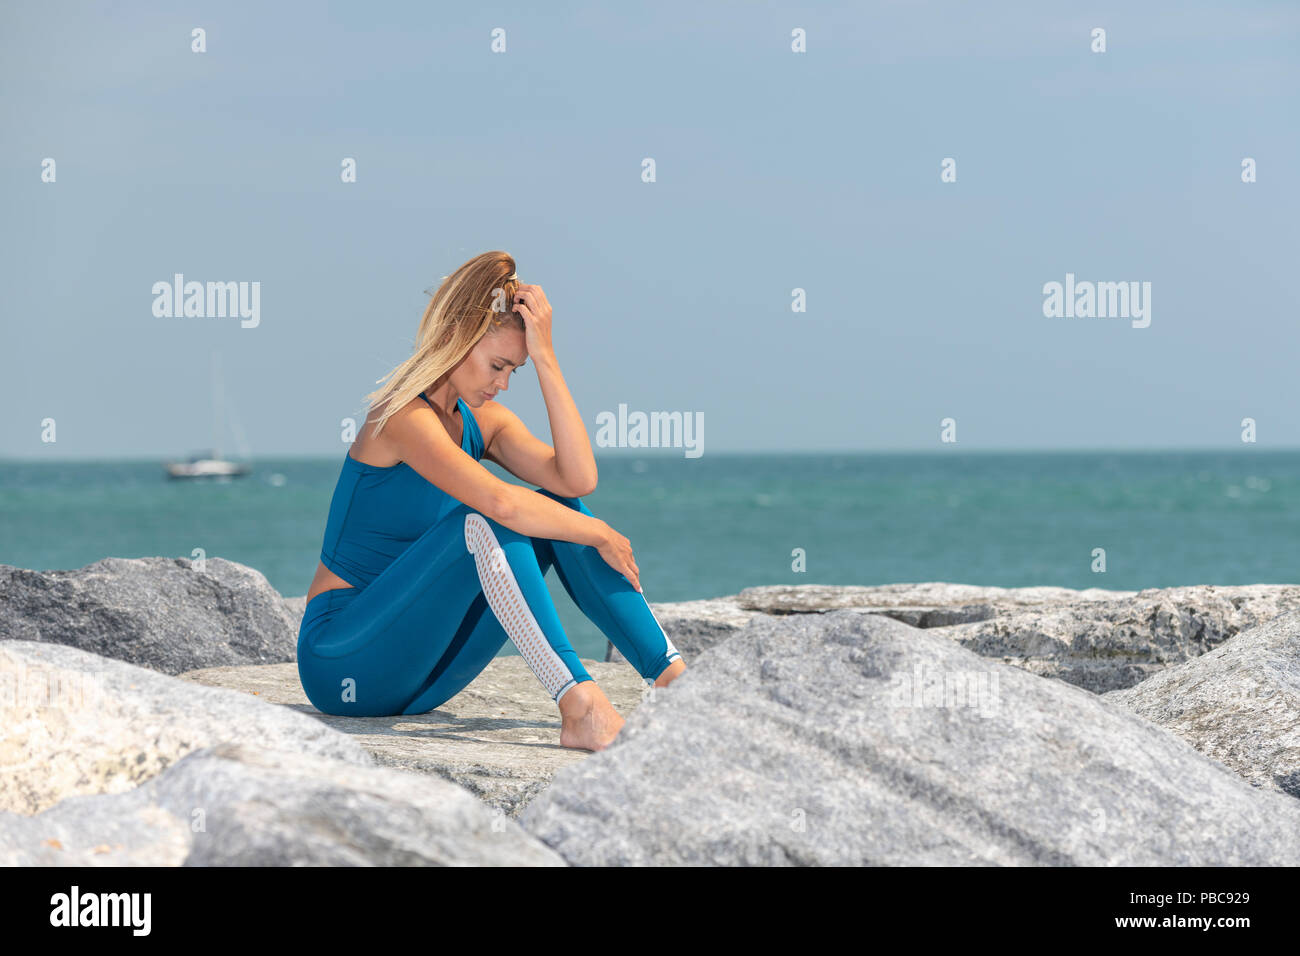 fit sports woman exhausted after exercise sitting on rocks by the sea with her head in her hands - Stock Image